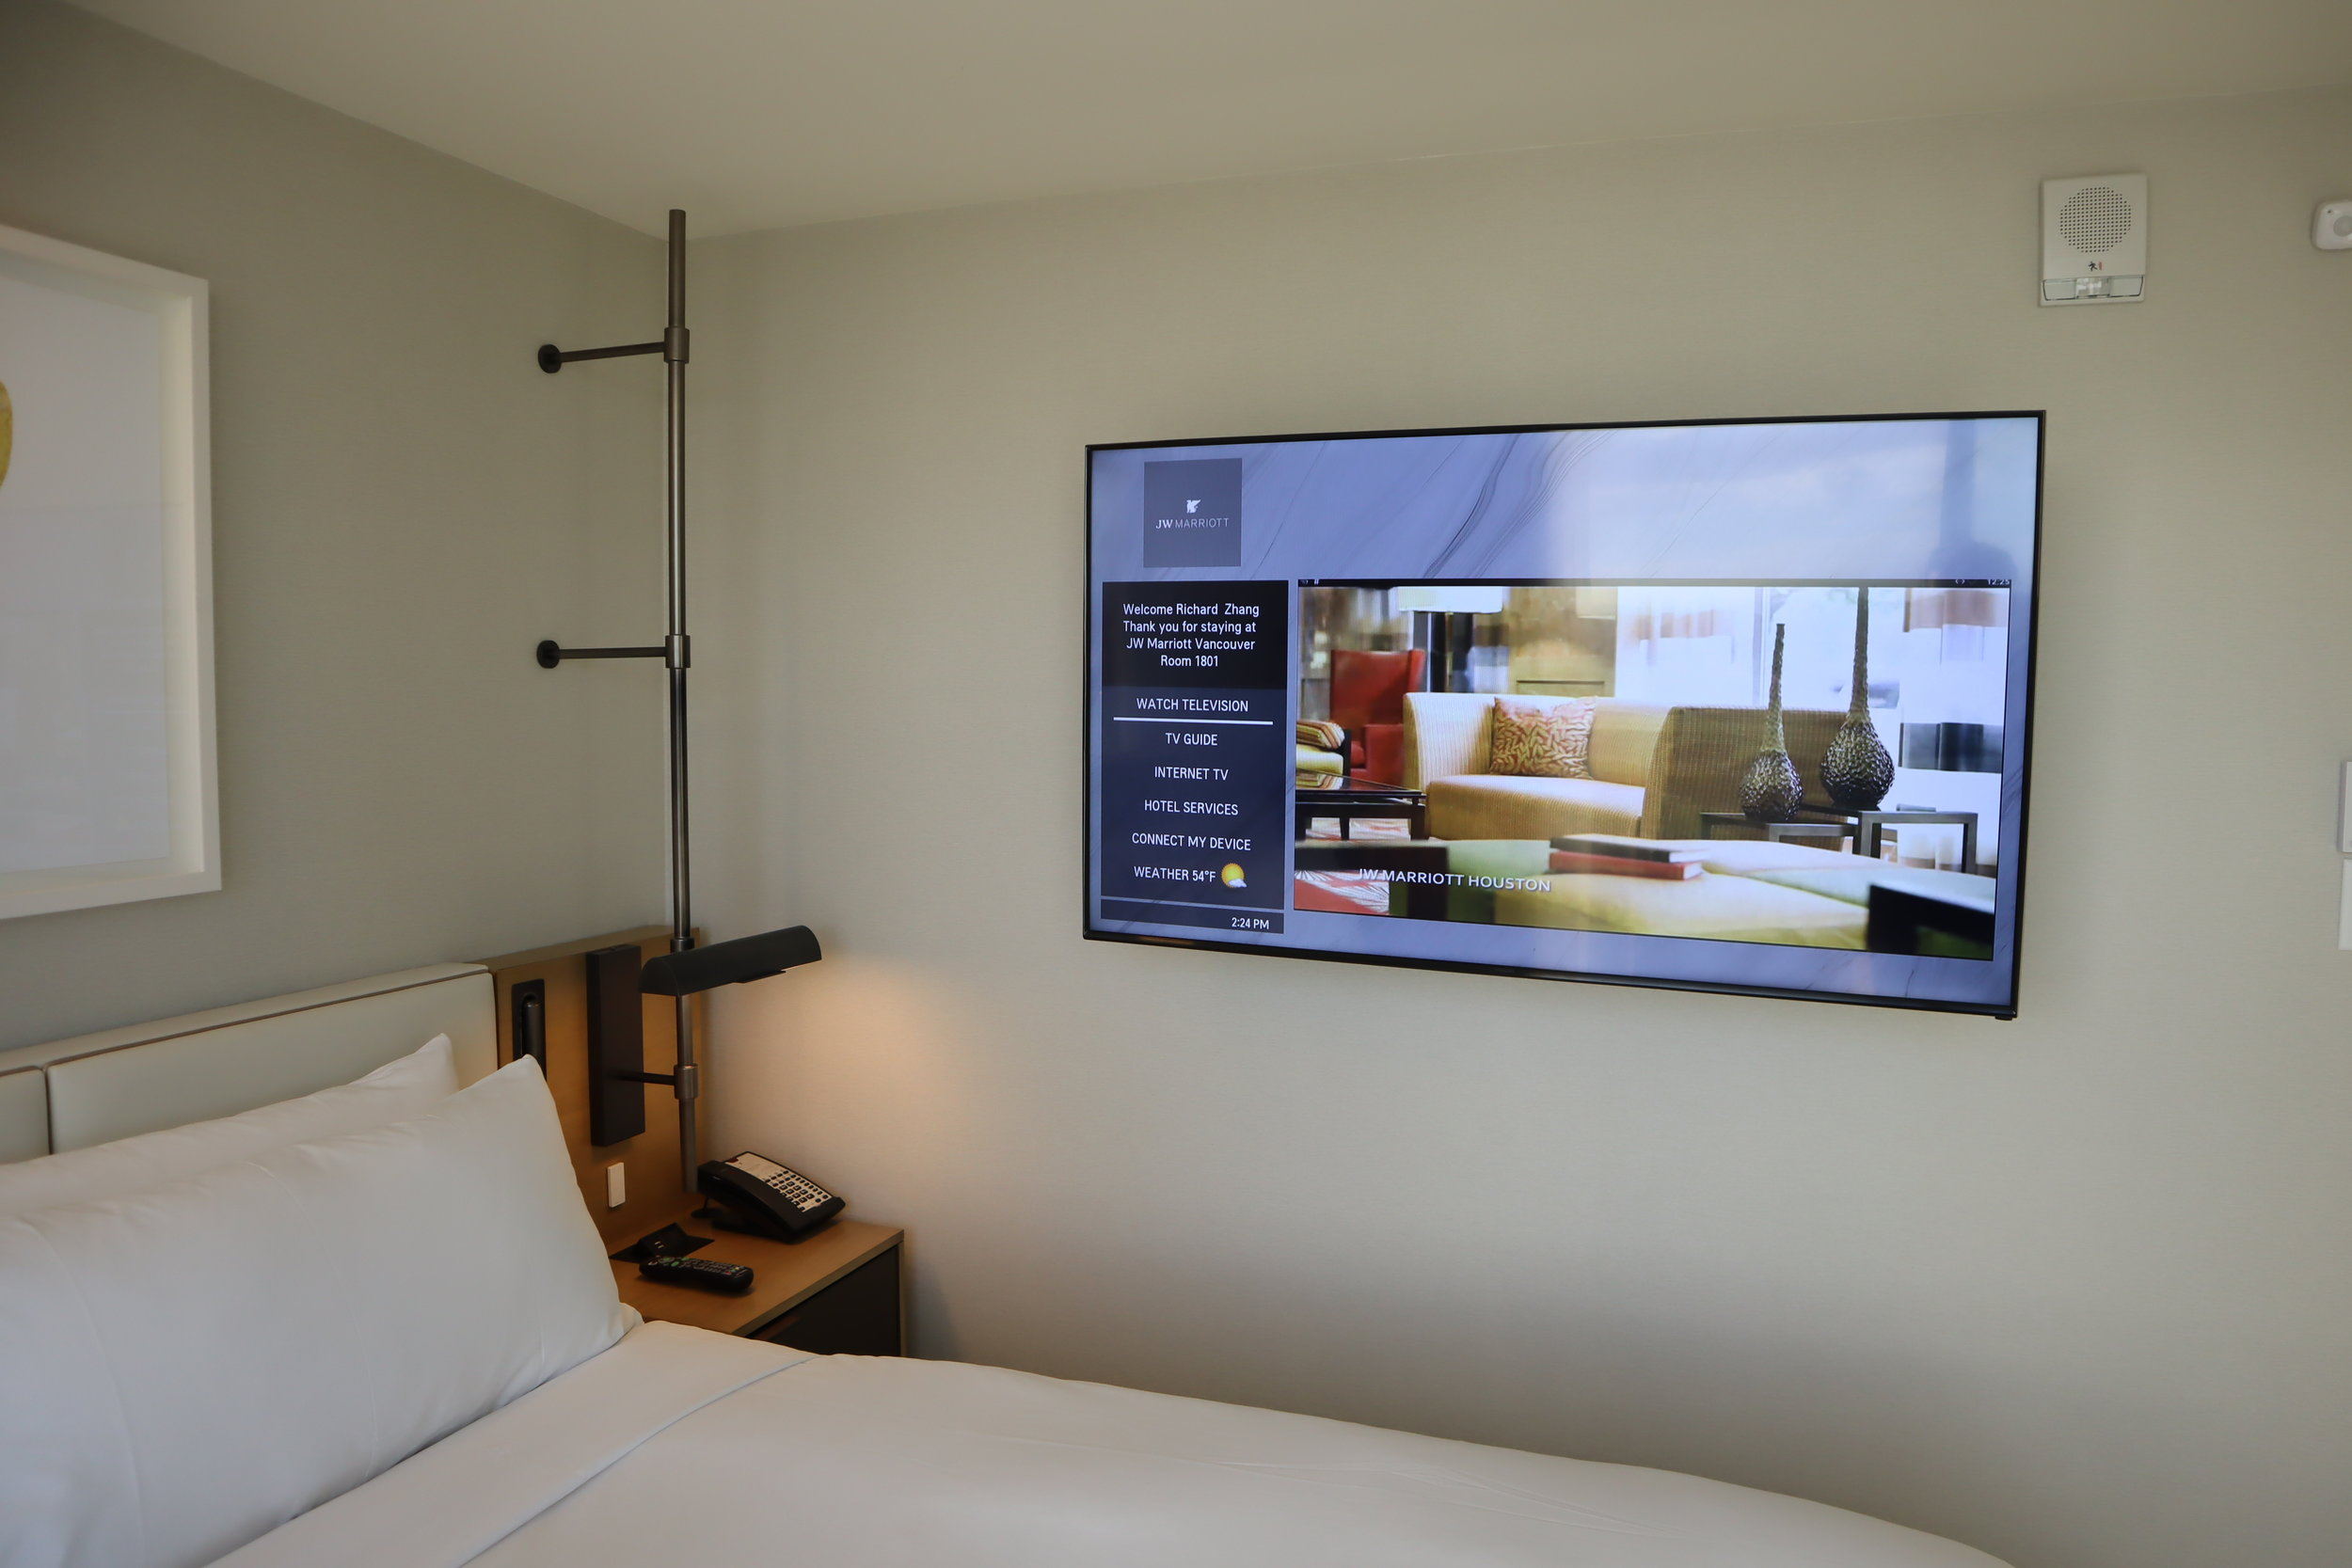 JW Marriott Parq Vancouver – Bedroom television